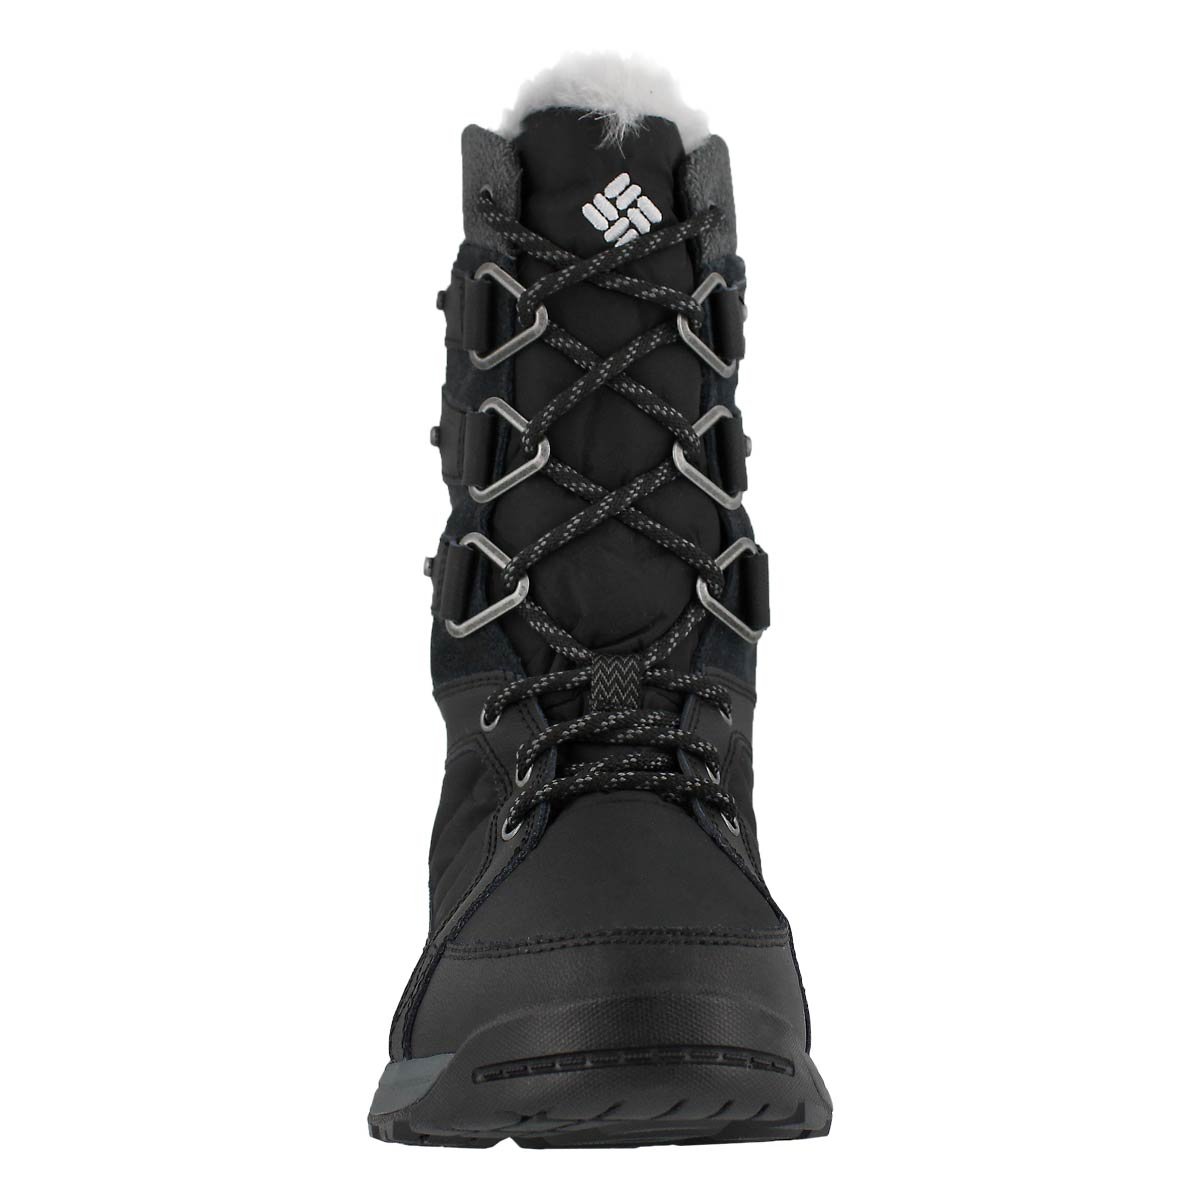 Lds Meadows OmniHeat 3D black wntr boot